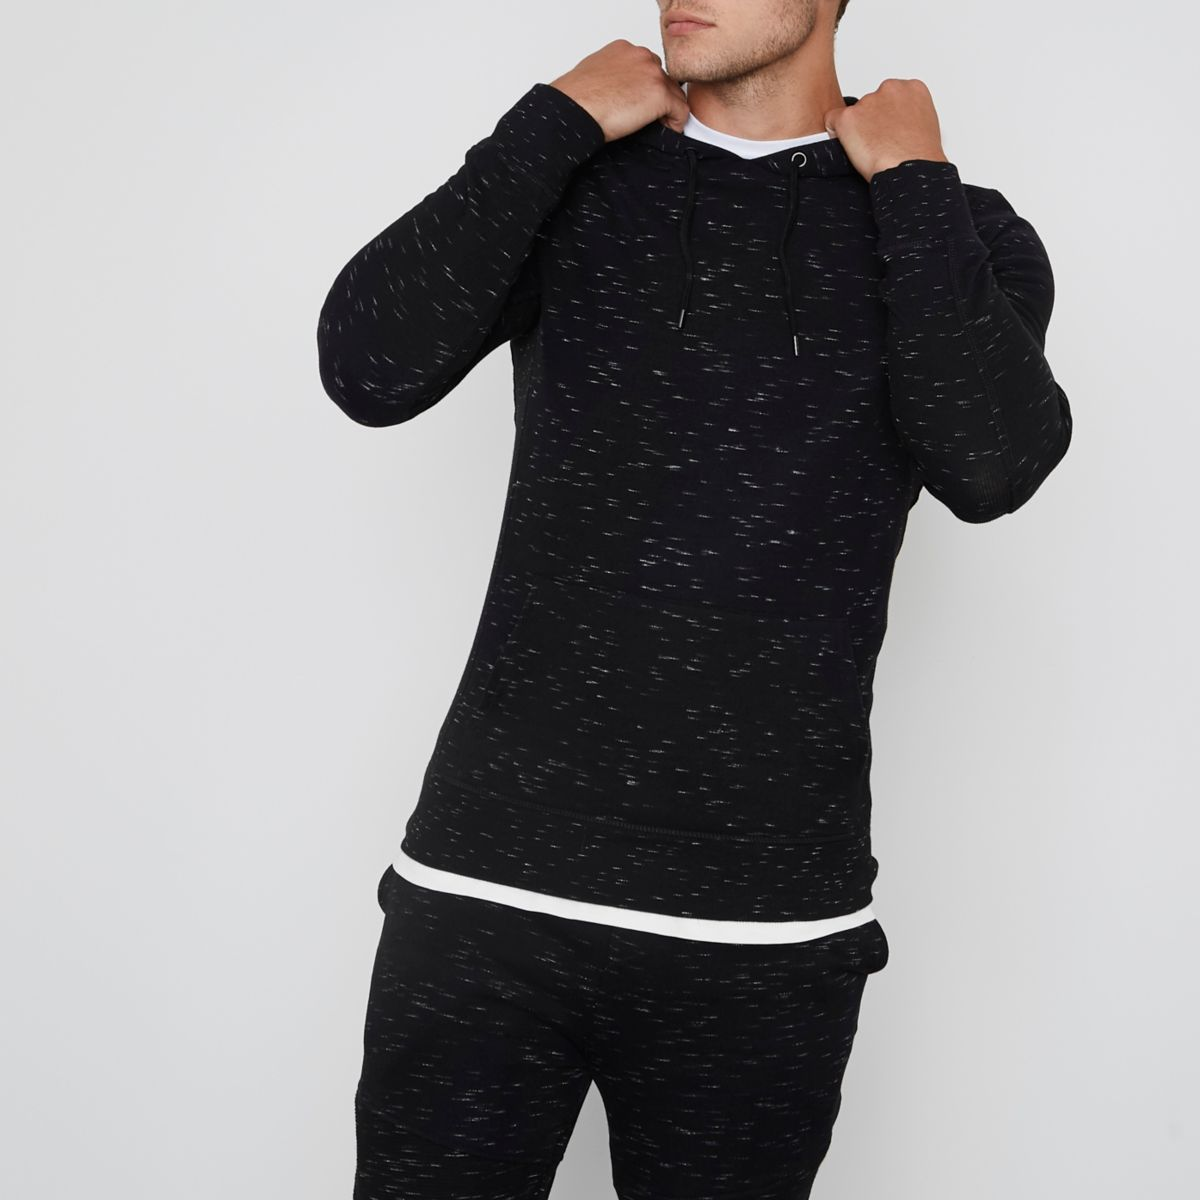 Black long sleeve muscle fit hoodie